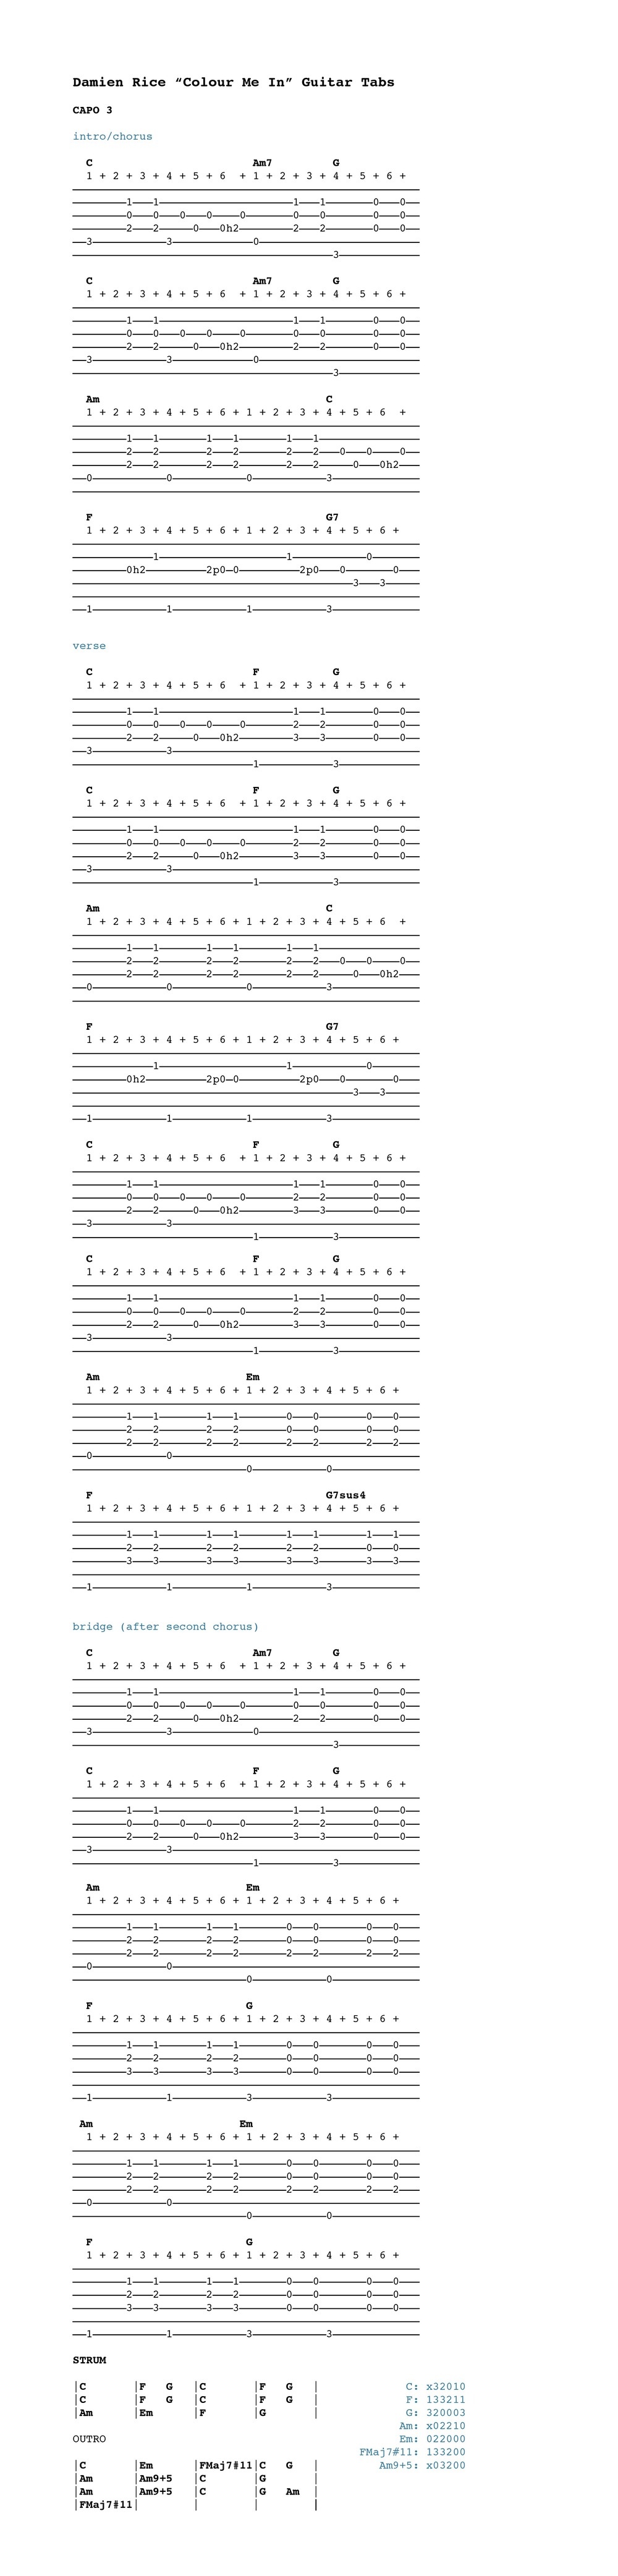 Colour Me In Guitar Tabs